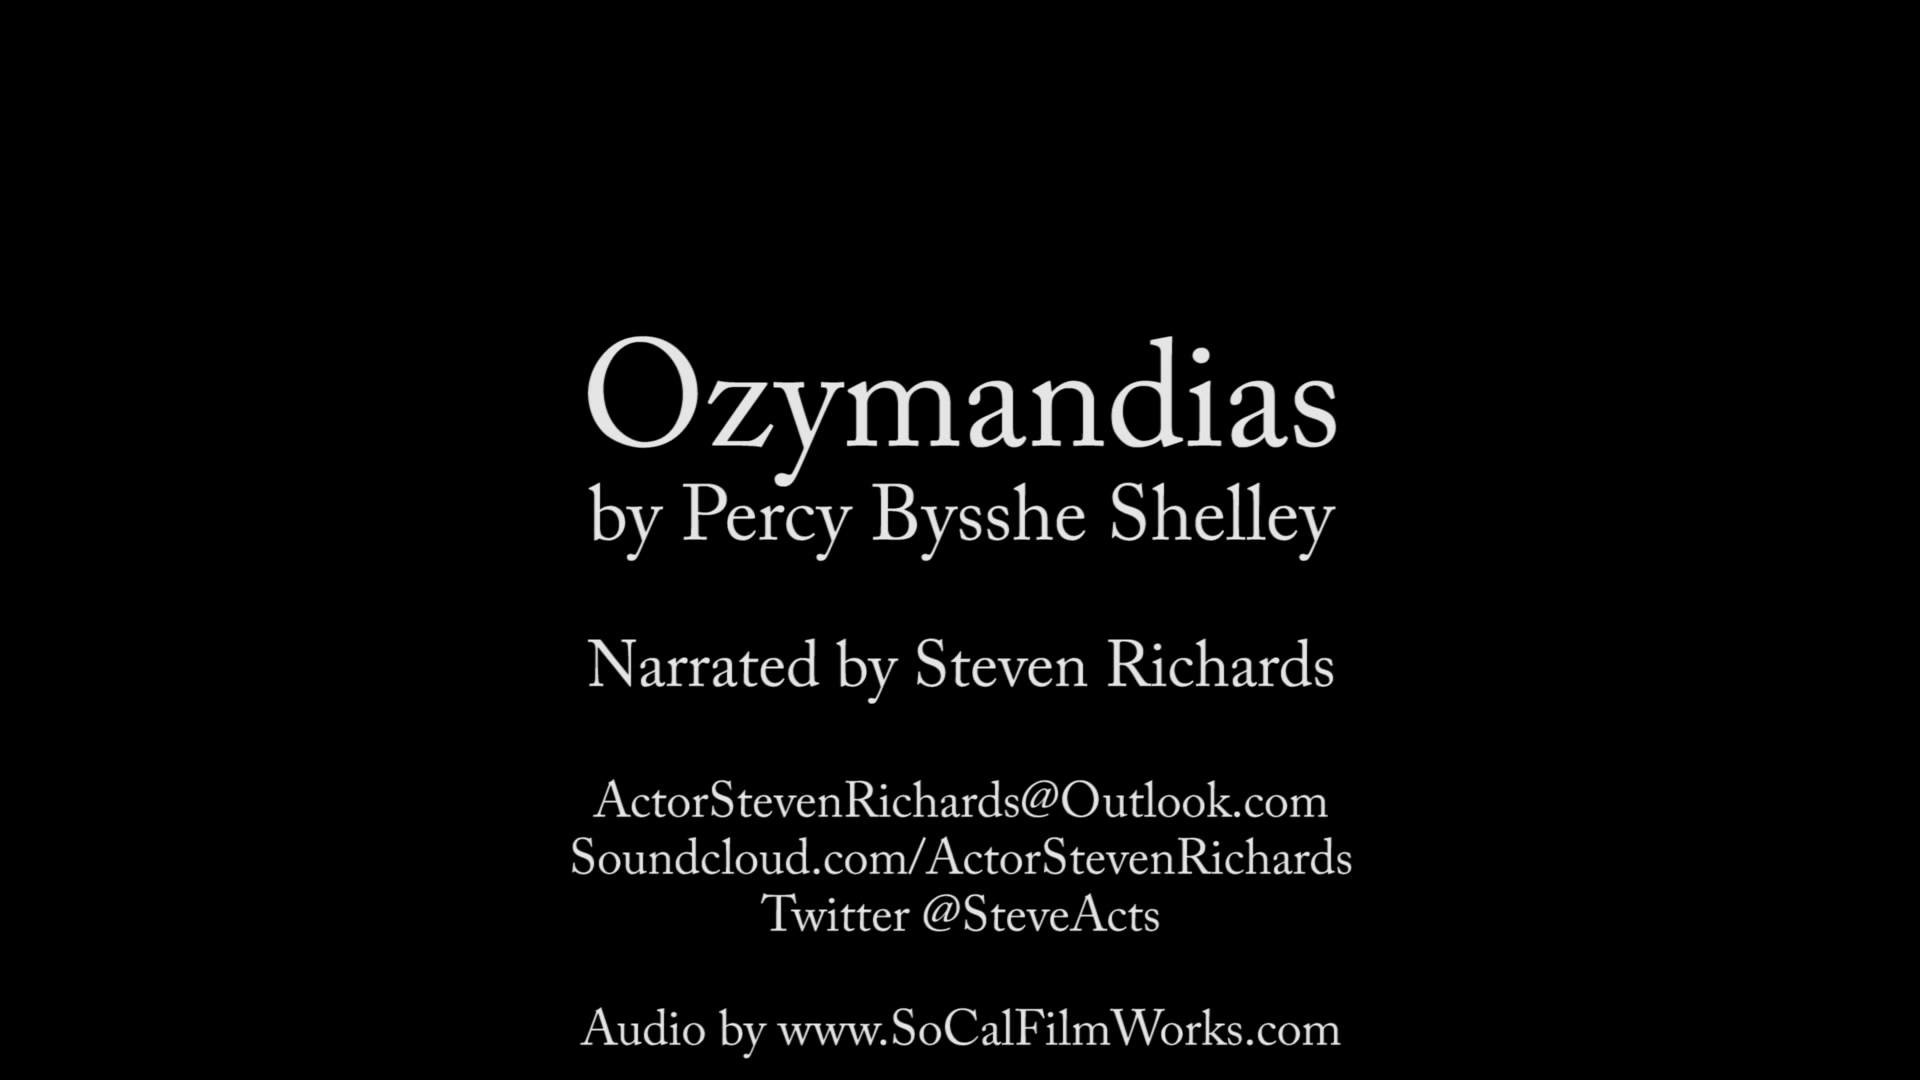 1920x1080 Ozymandias by Percy Bysshe Shelley (audio)